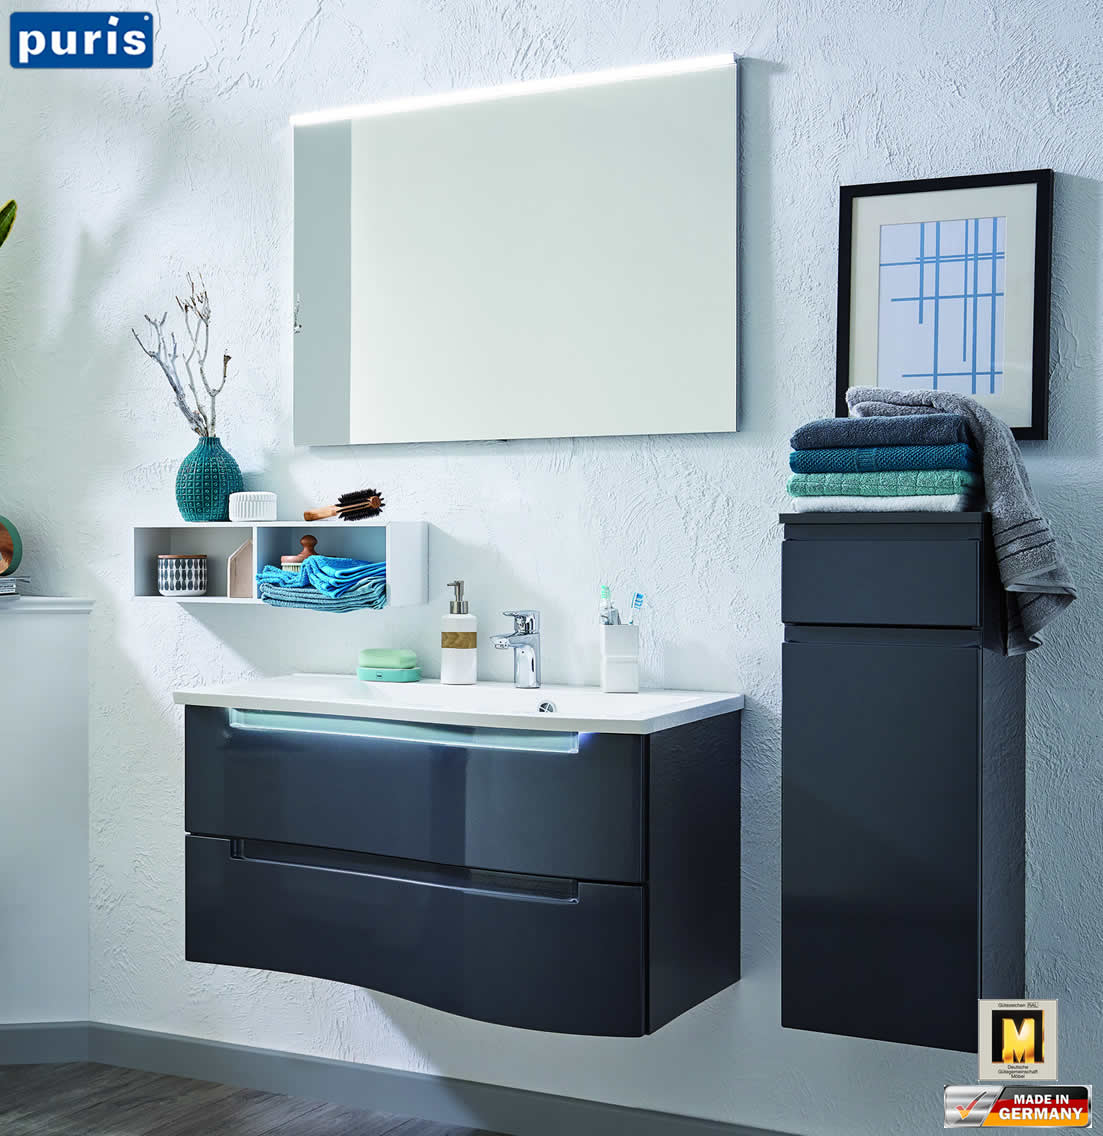 puris purefaction badm bel set 90 cm ablage links 2 ausz ge spiegelpaneel impuls home. Black Bedroom Furniture Sets. Home Design Ideas